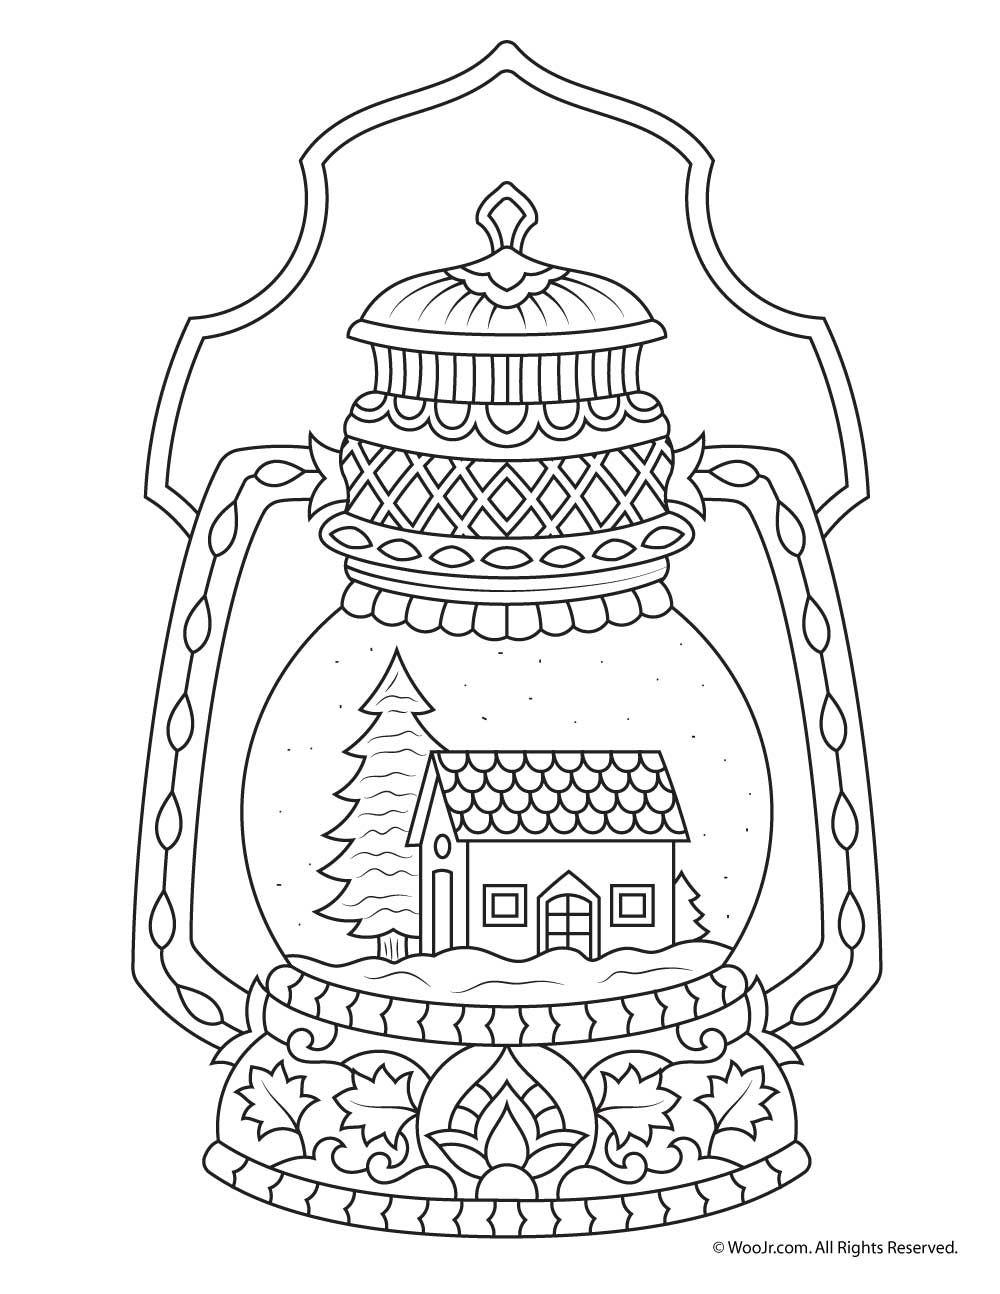 Winter Snow Globe Adult Coloring Page Coloring Pages Winter